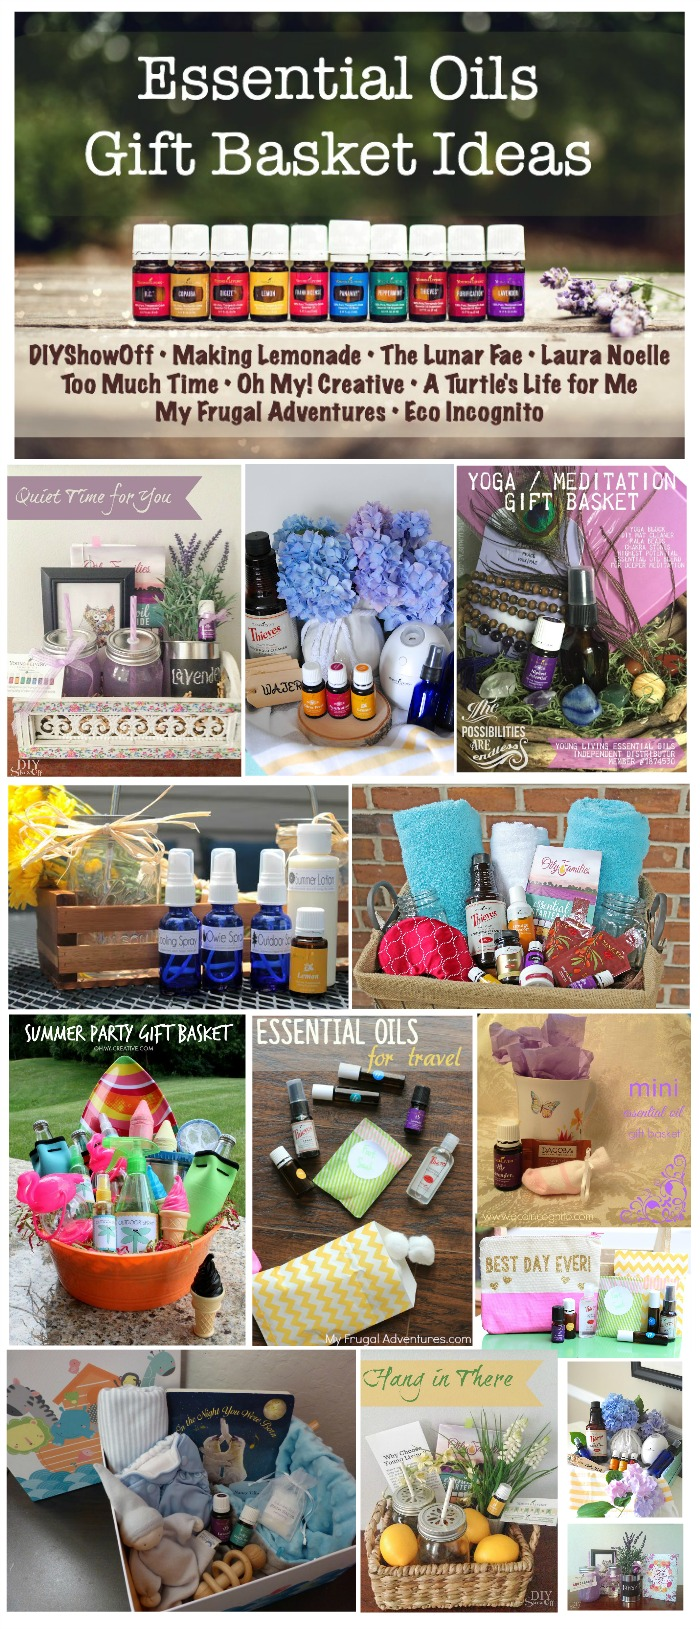 What perfect way to share your love for essential oils than to give them as gifts. Here you will find great ways to create an Essential Oils Gift Basket for many occasions!   |   OHMY-CREATIVE.COM